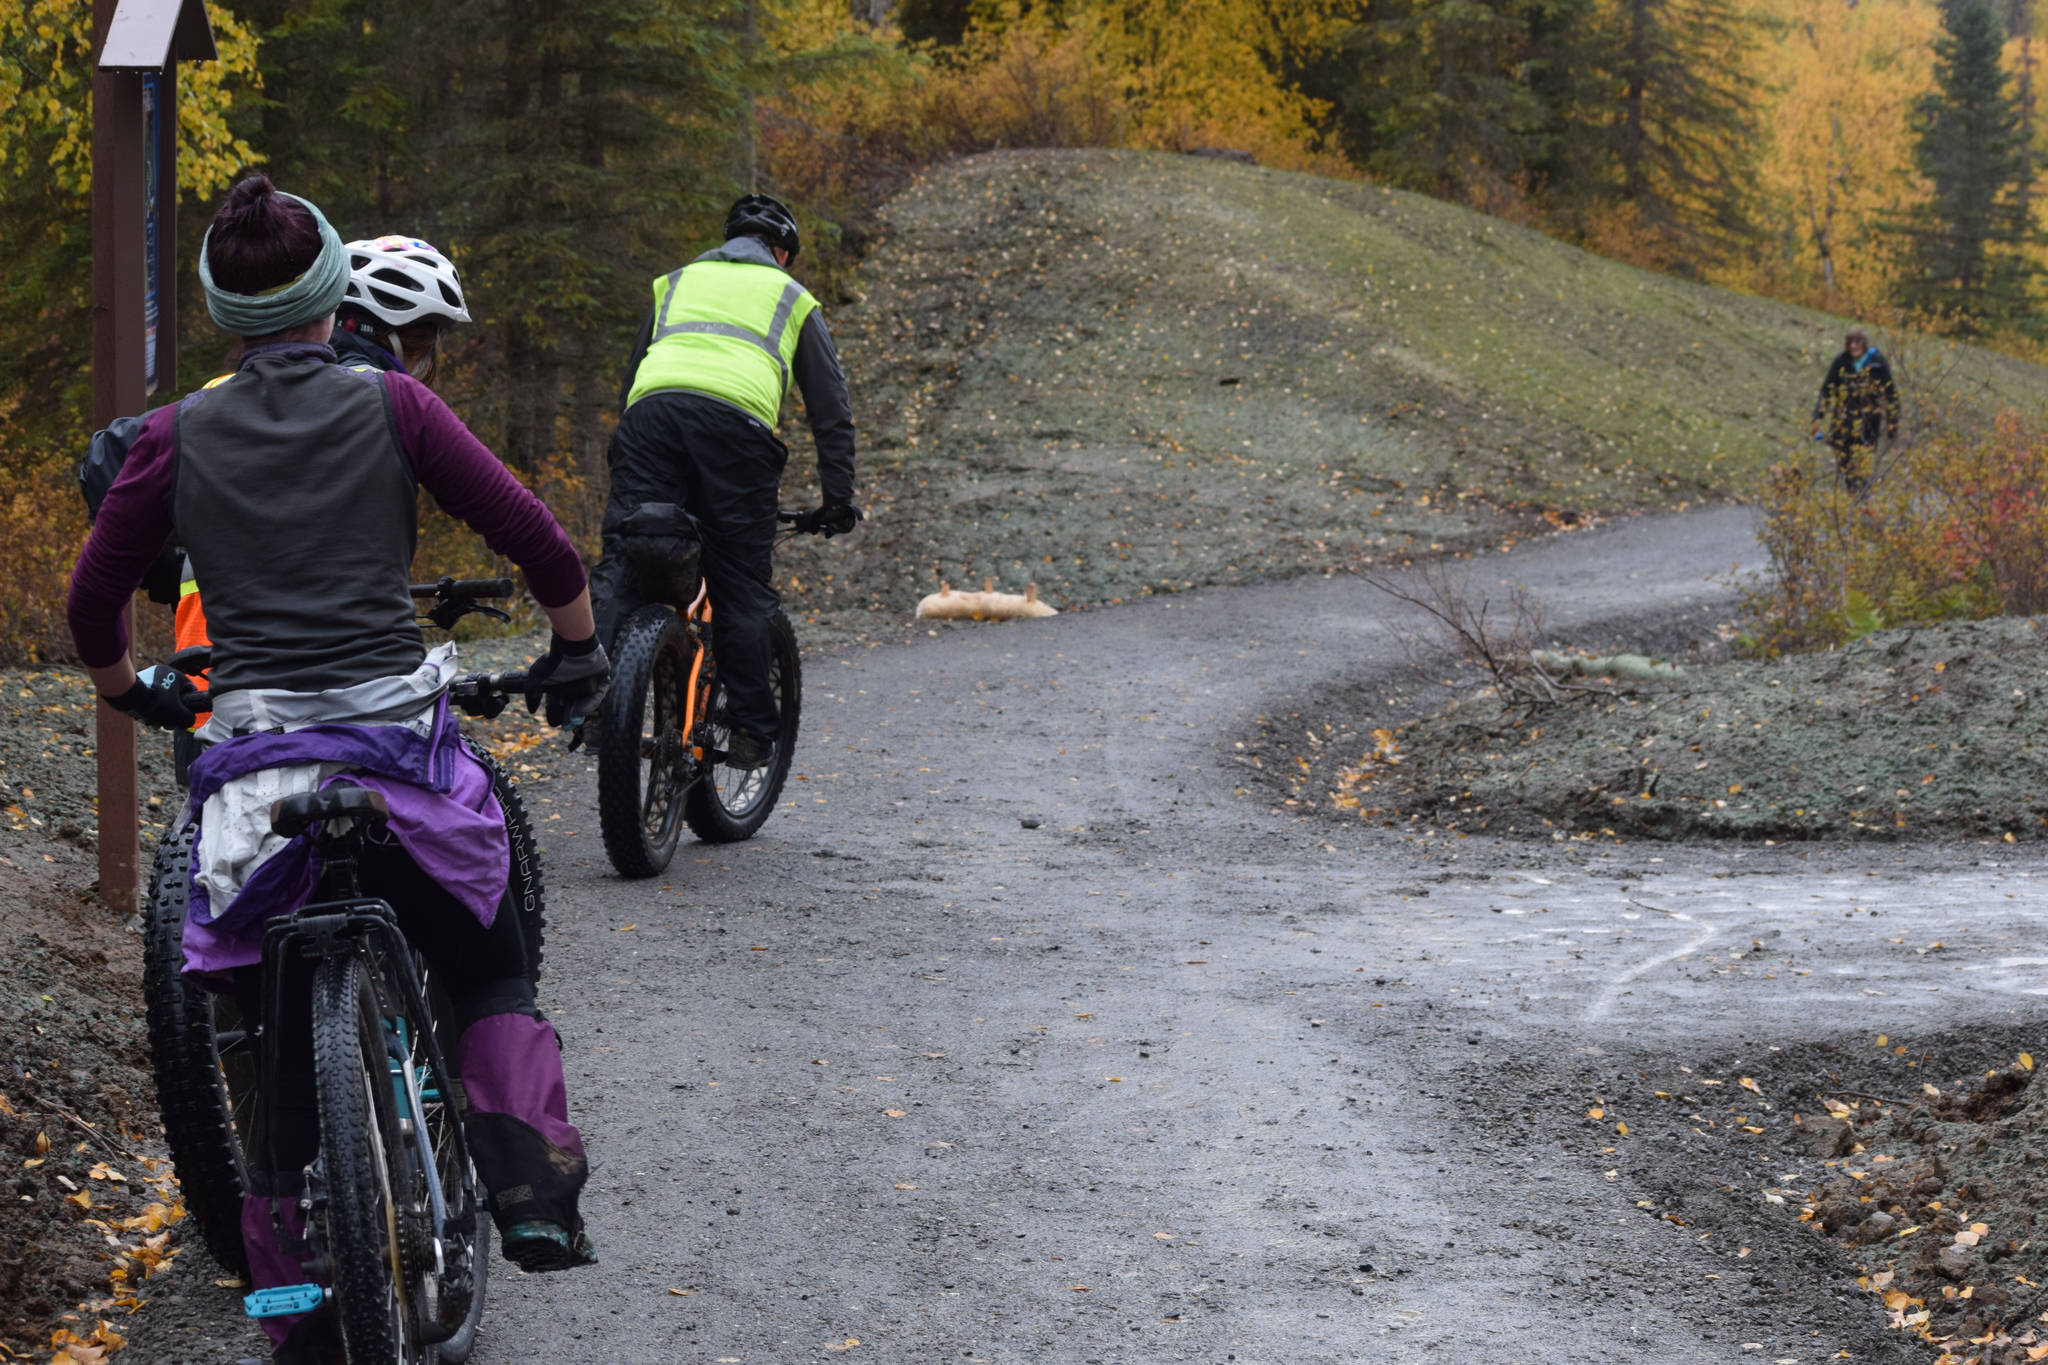 Bicyclists are seen on the Ski Hill Multi-use Trail on Saturday, Sept. 26 just outside Soldotna, Alaska.                                 Bicyclists are seen on the Ski Hill Multi-use Trail on Saturday, Sept. 26 just outside Soldotna, Alaska.